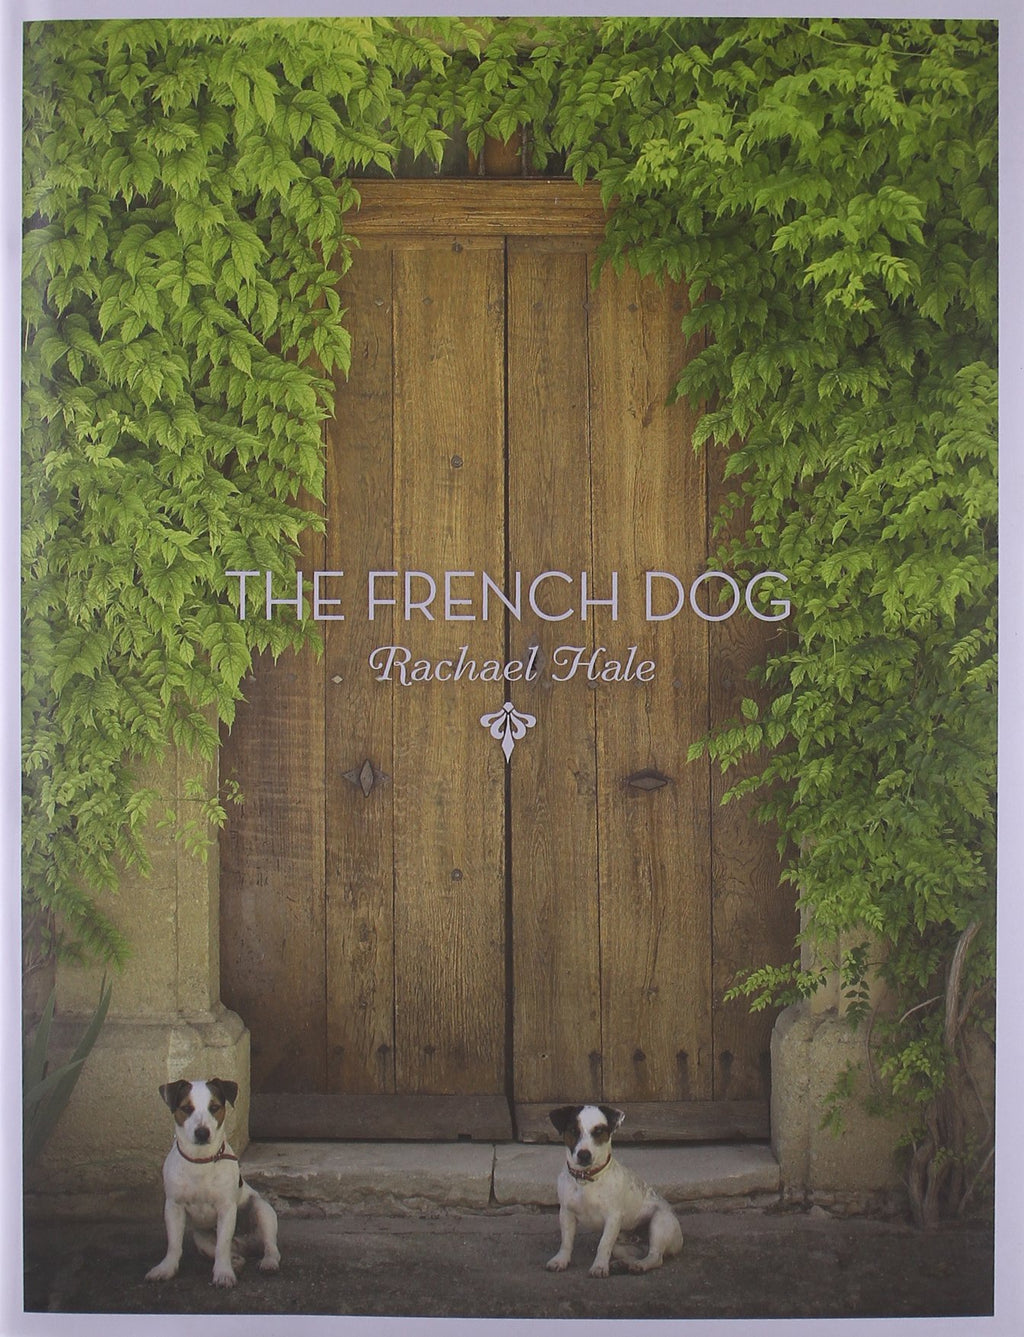 The French Dog - Wanderlustre